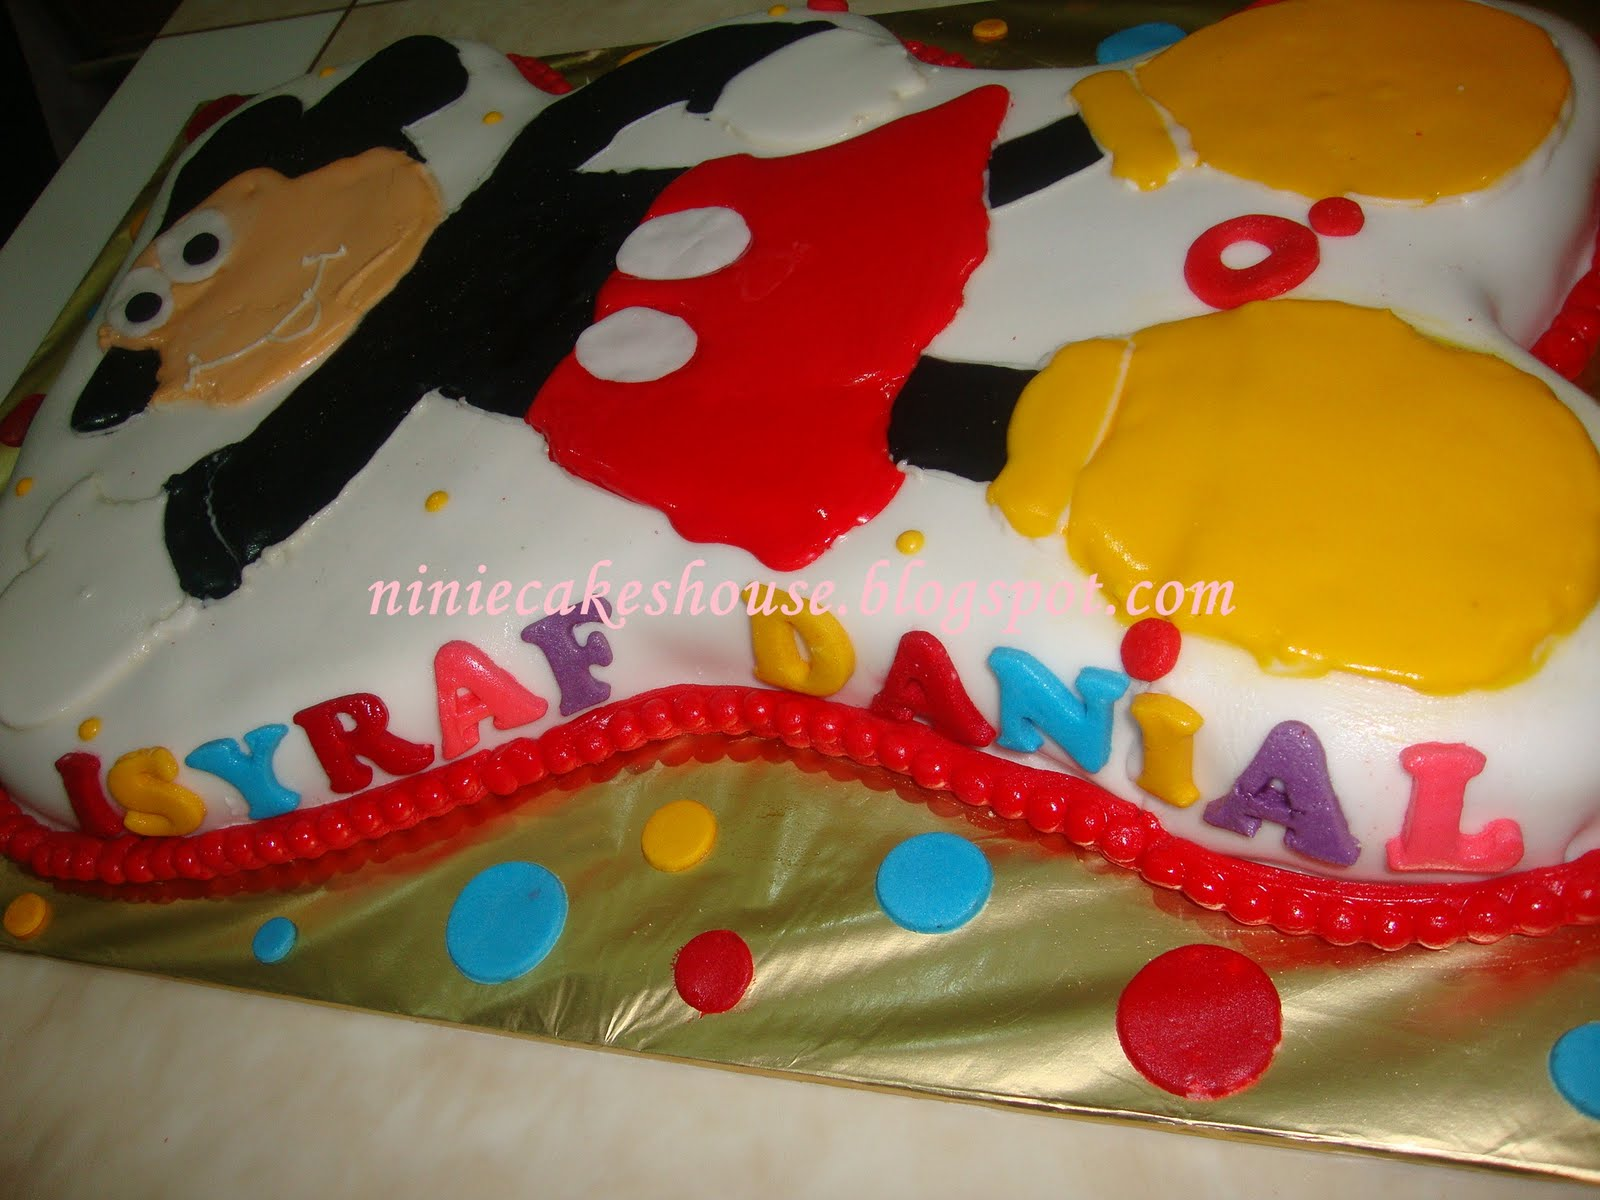 ninie cakes house: Red Velvet Cake - Mickey Mouse Image